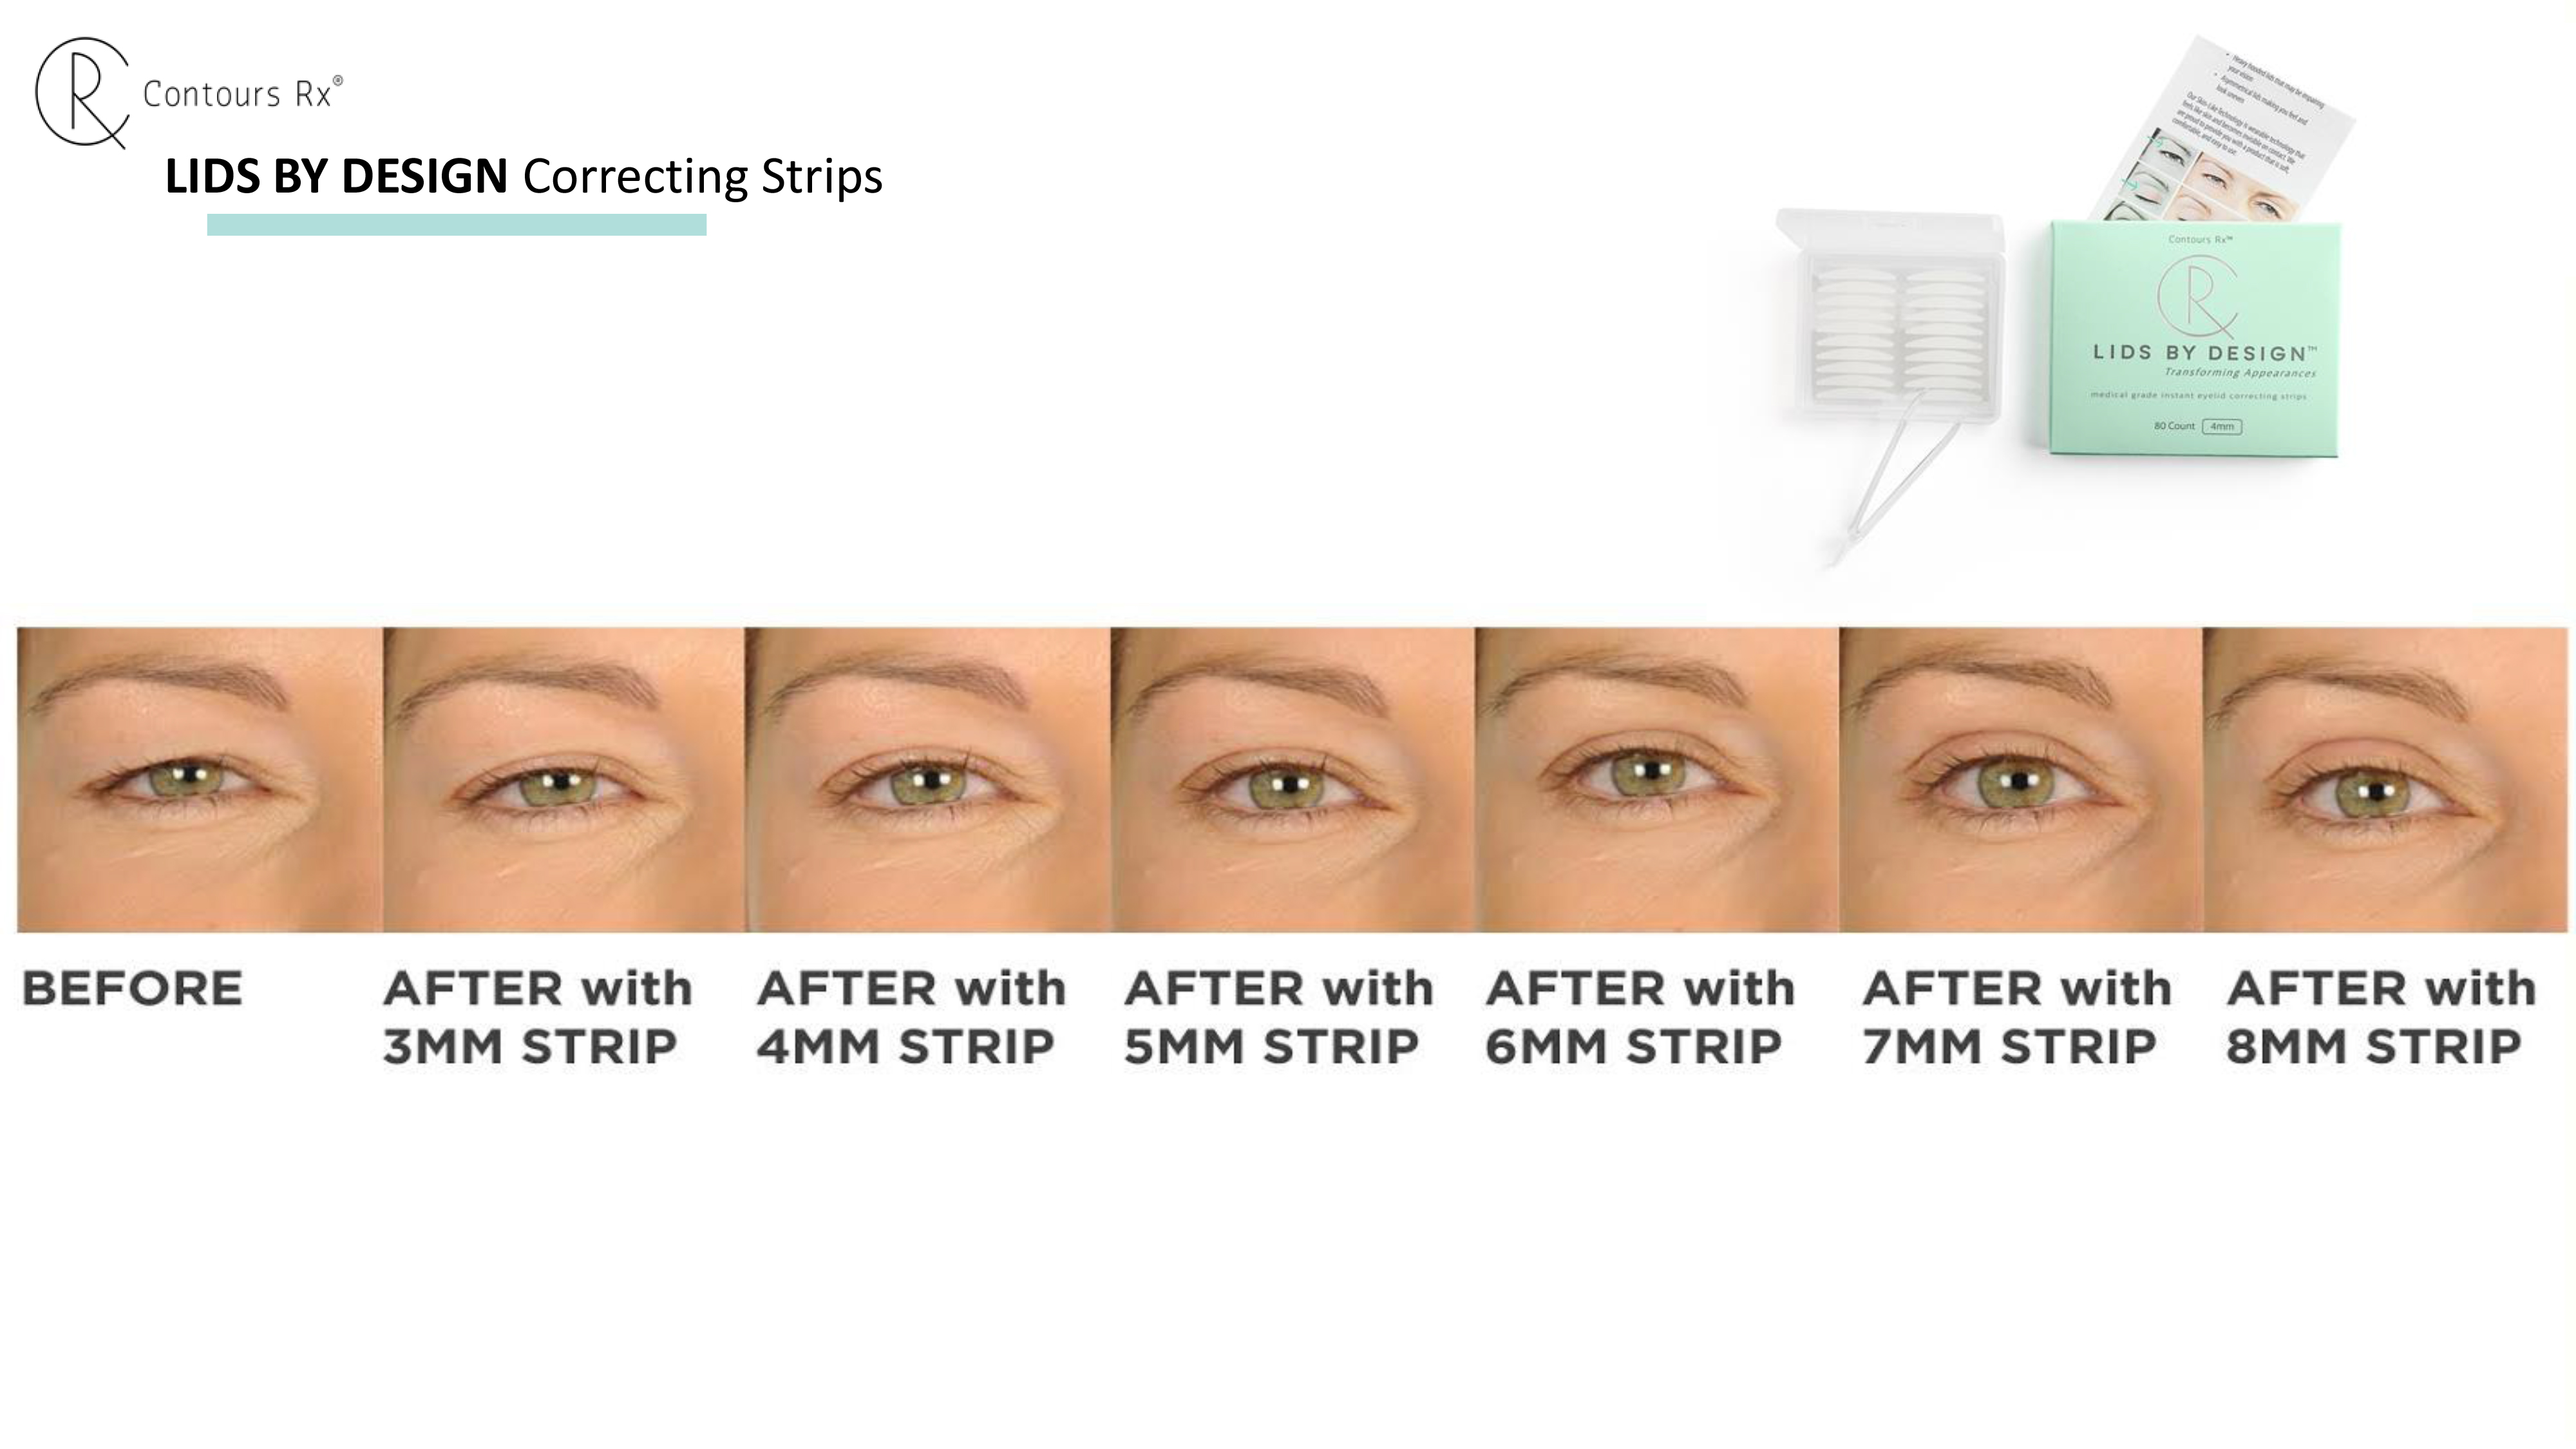 Before & after Lids By Design Correcting Strips - Contours Rx®